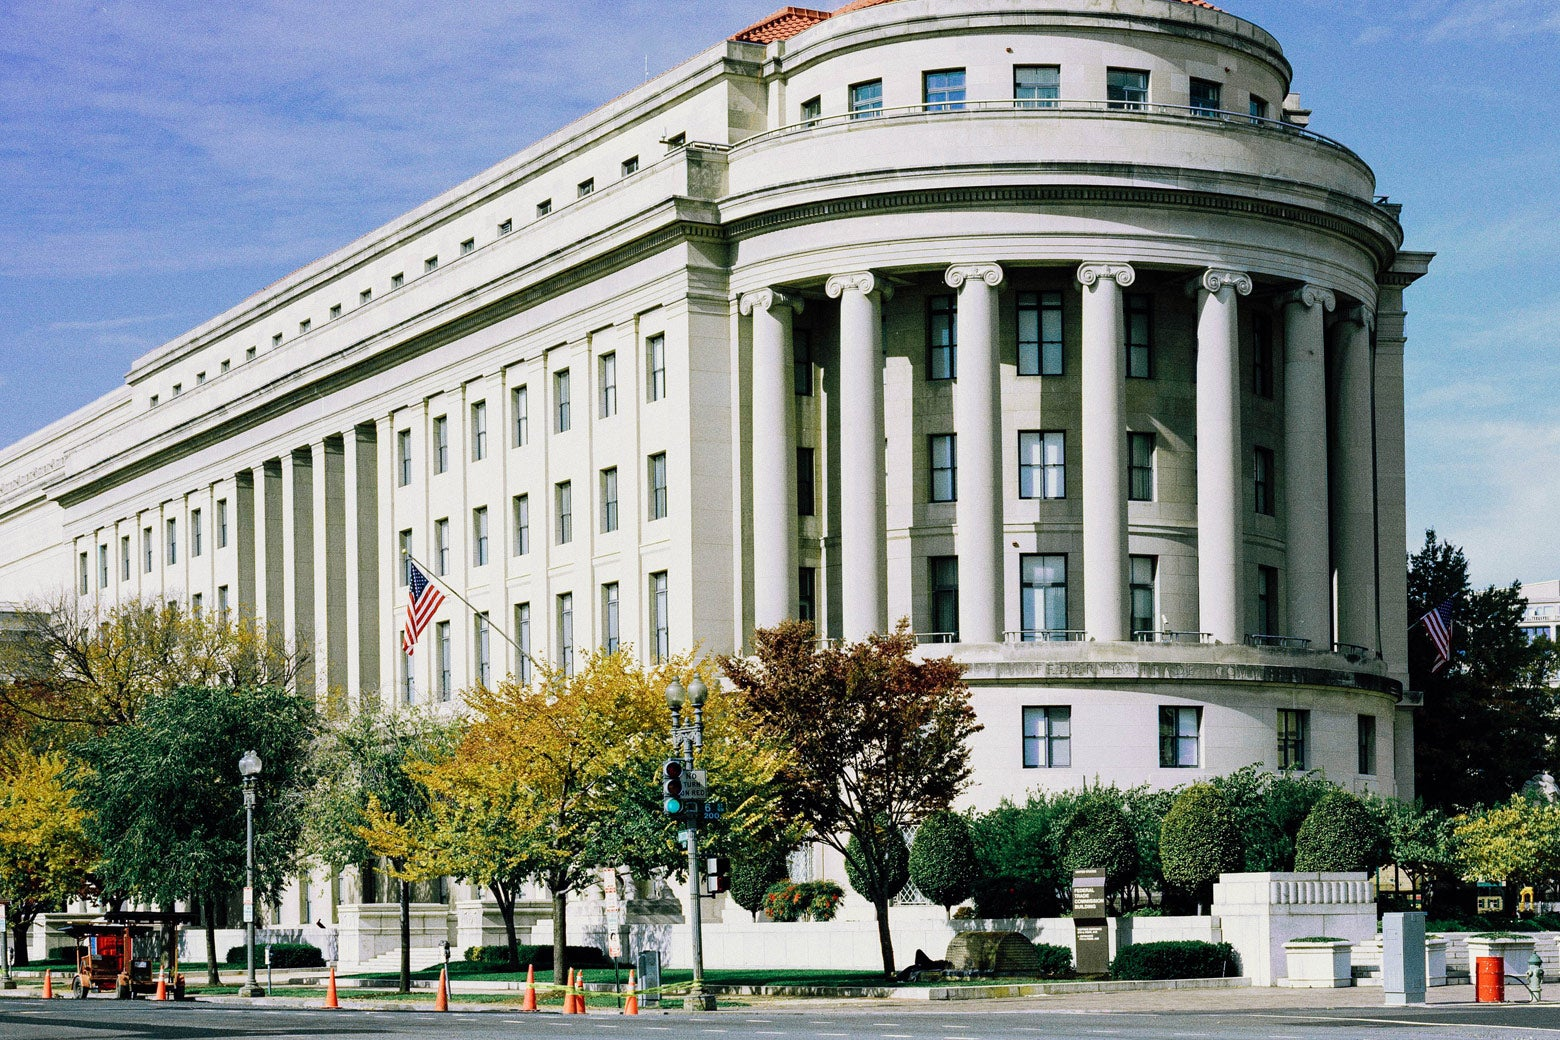 The FTC building in Washington.